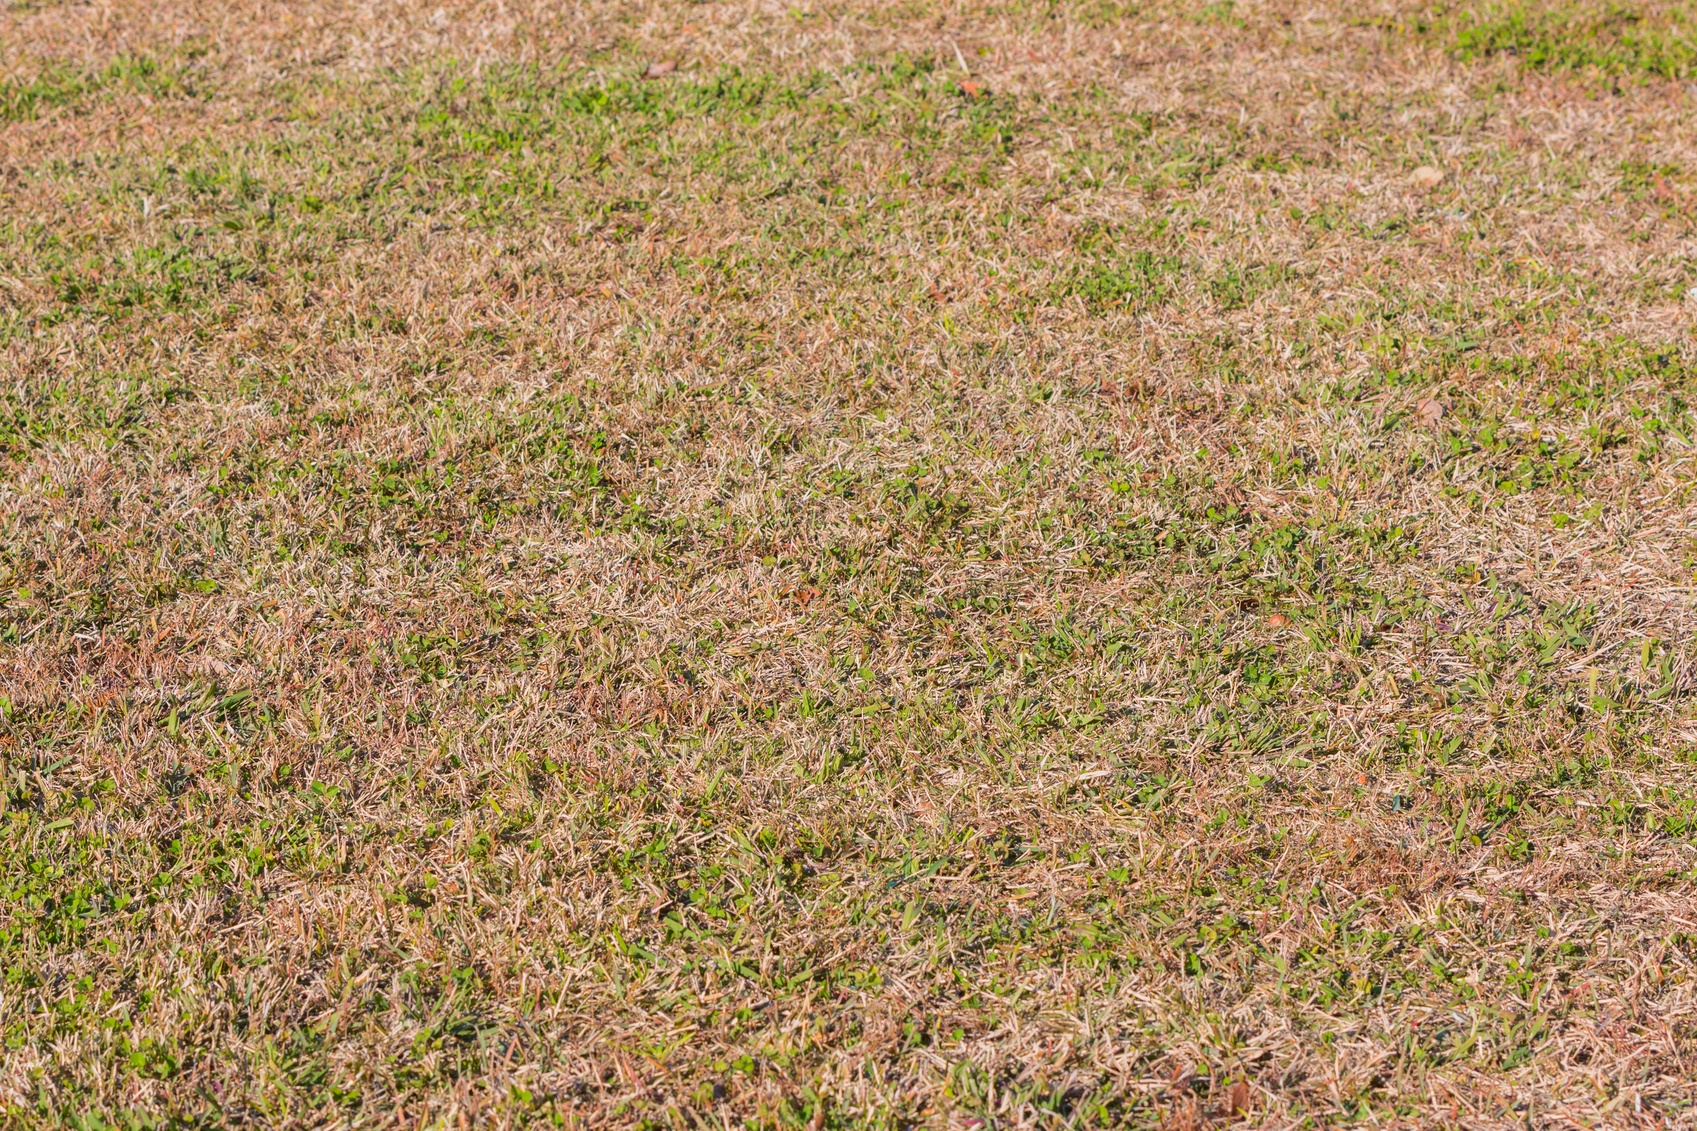 In hot and dry weather, homeowners across Canada start to wonder what is going on with their brown lawn.